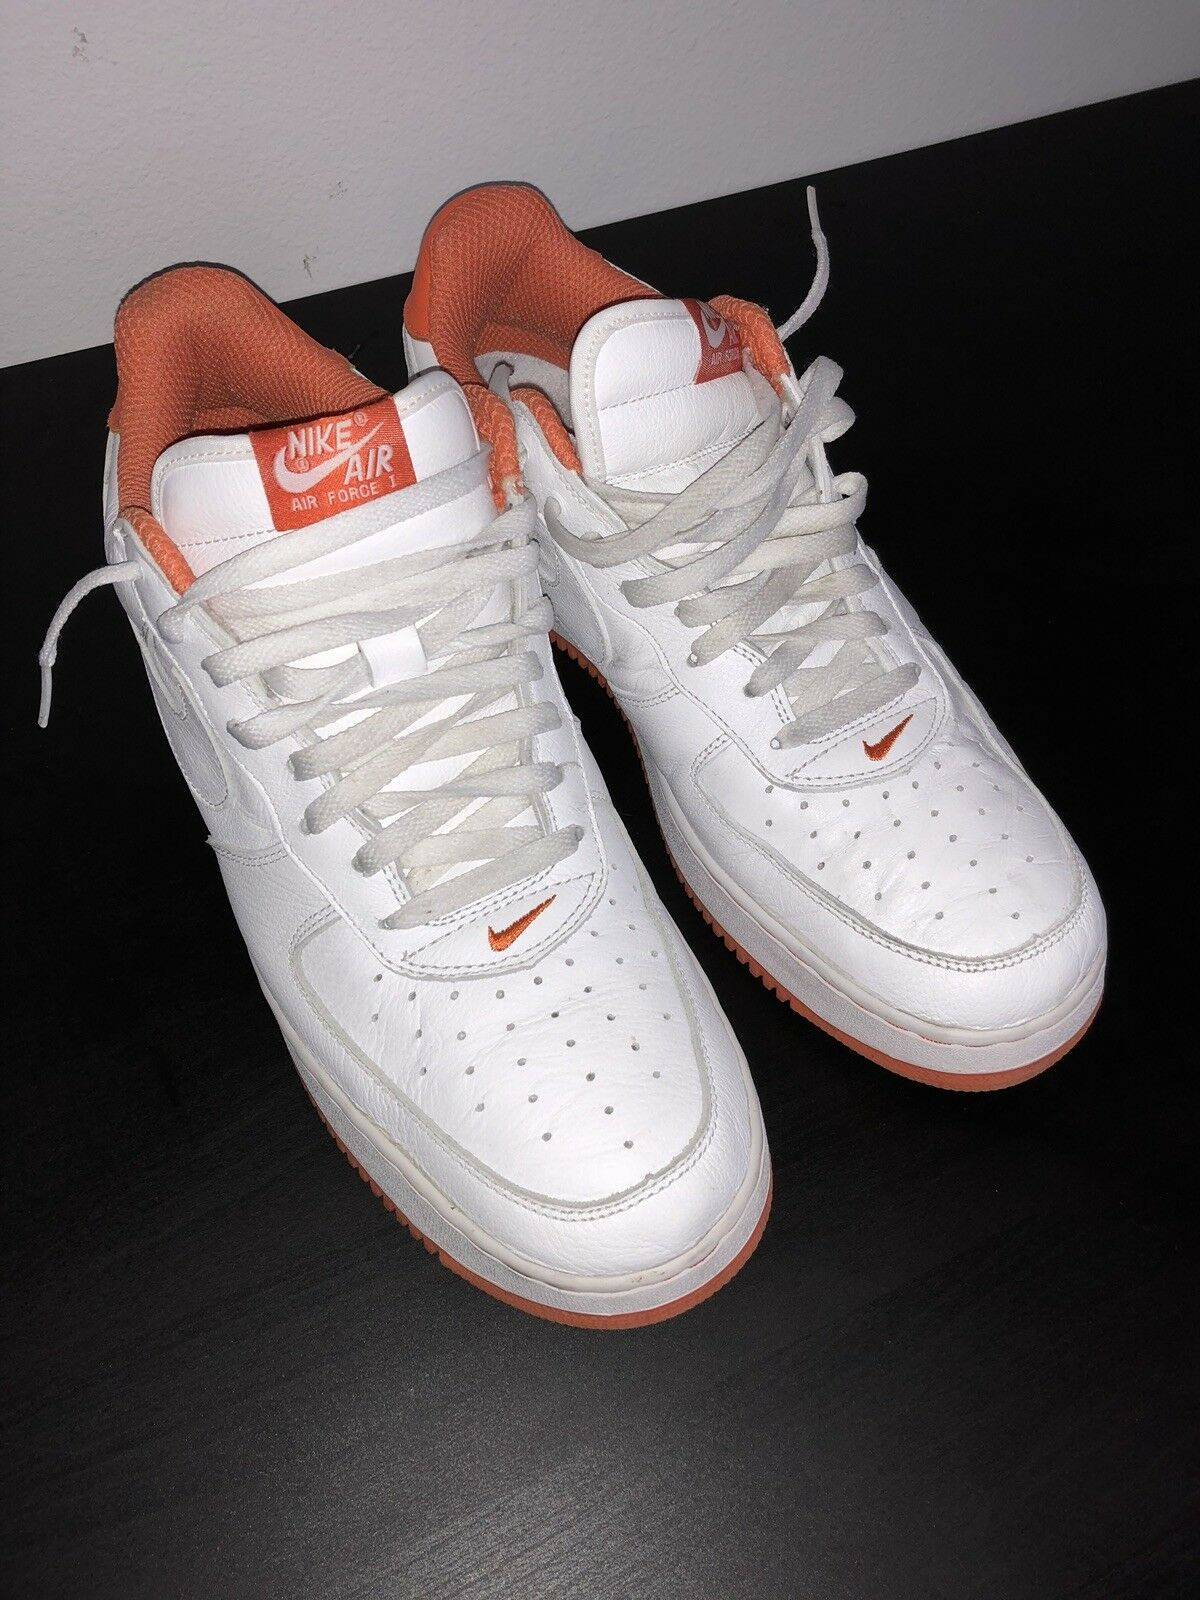 b764ae8dff Nike Air Force 1 Wht orange 14 2001 Men npewbu9016-Athletic Shoes ...